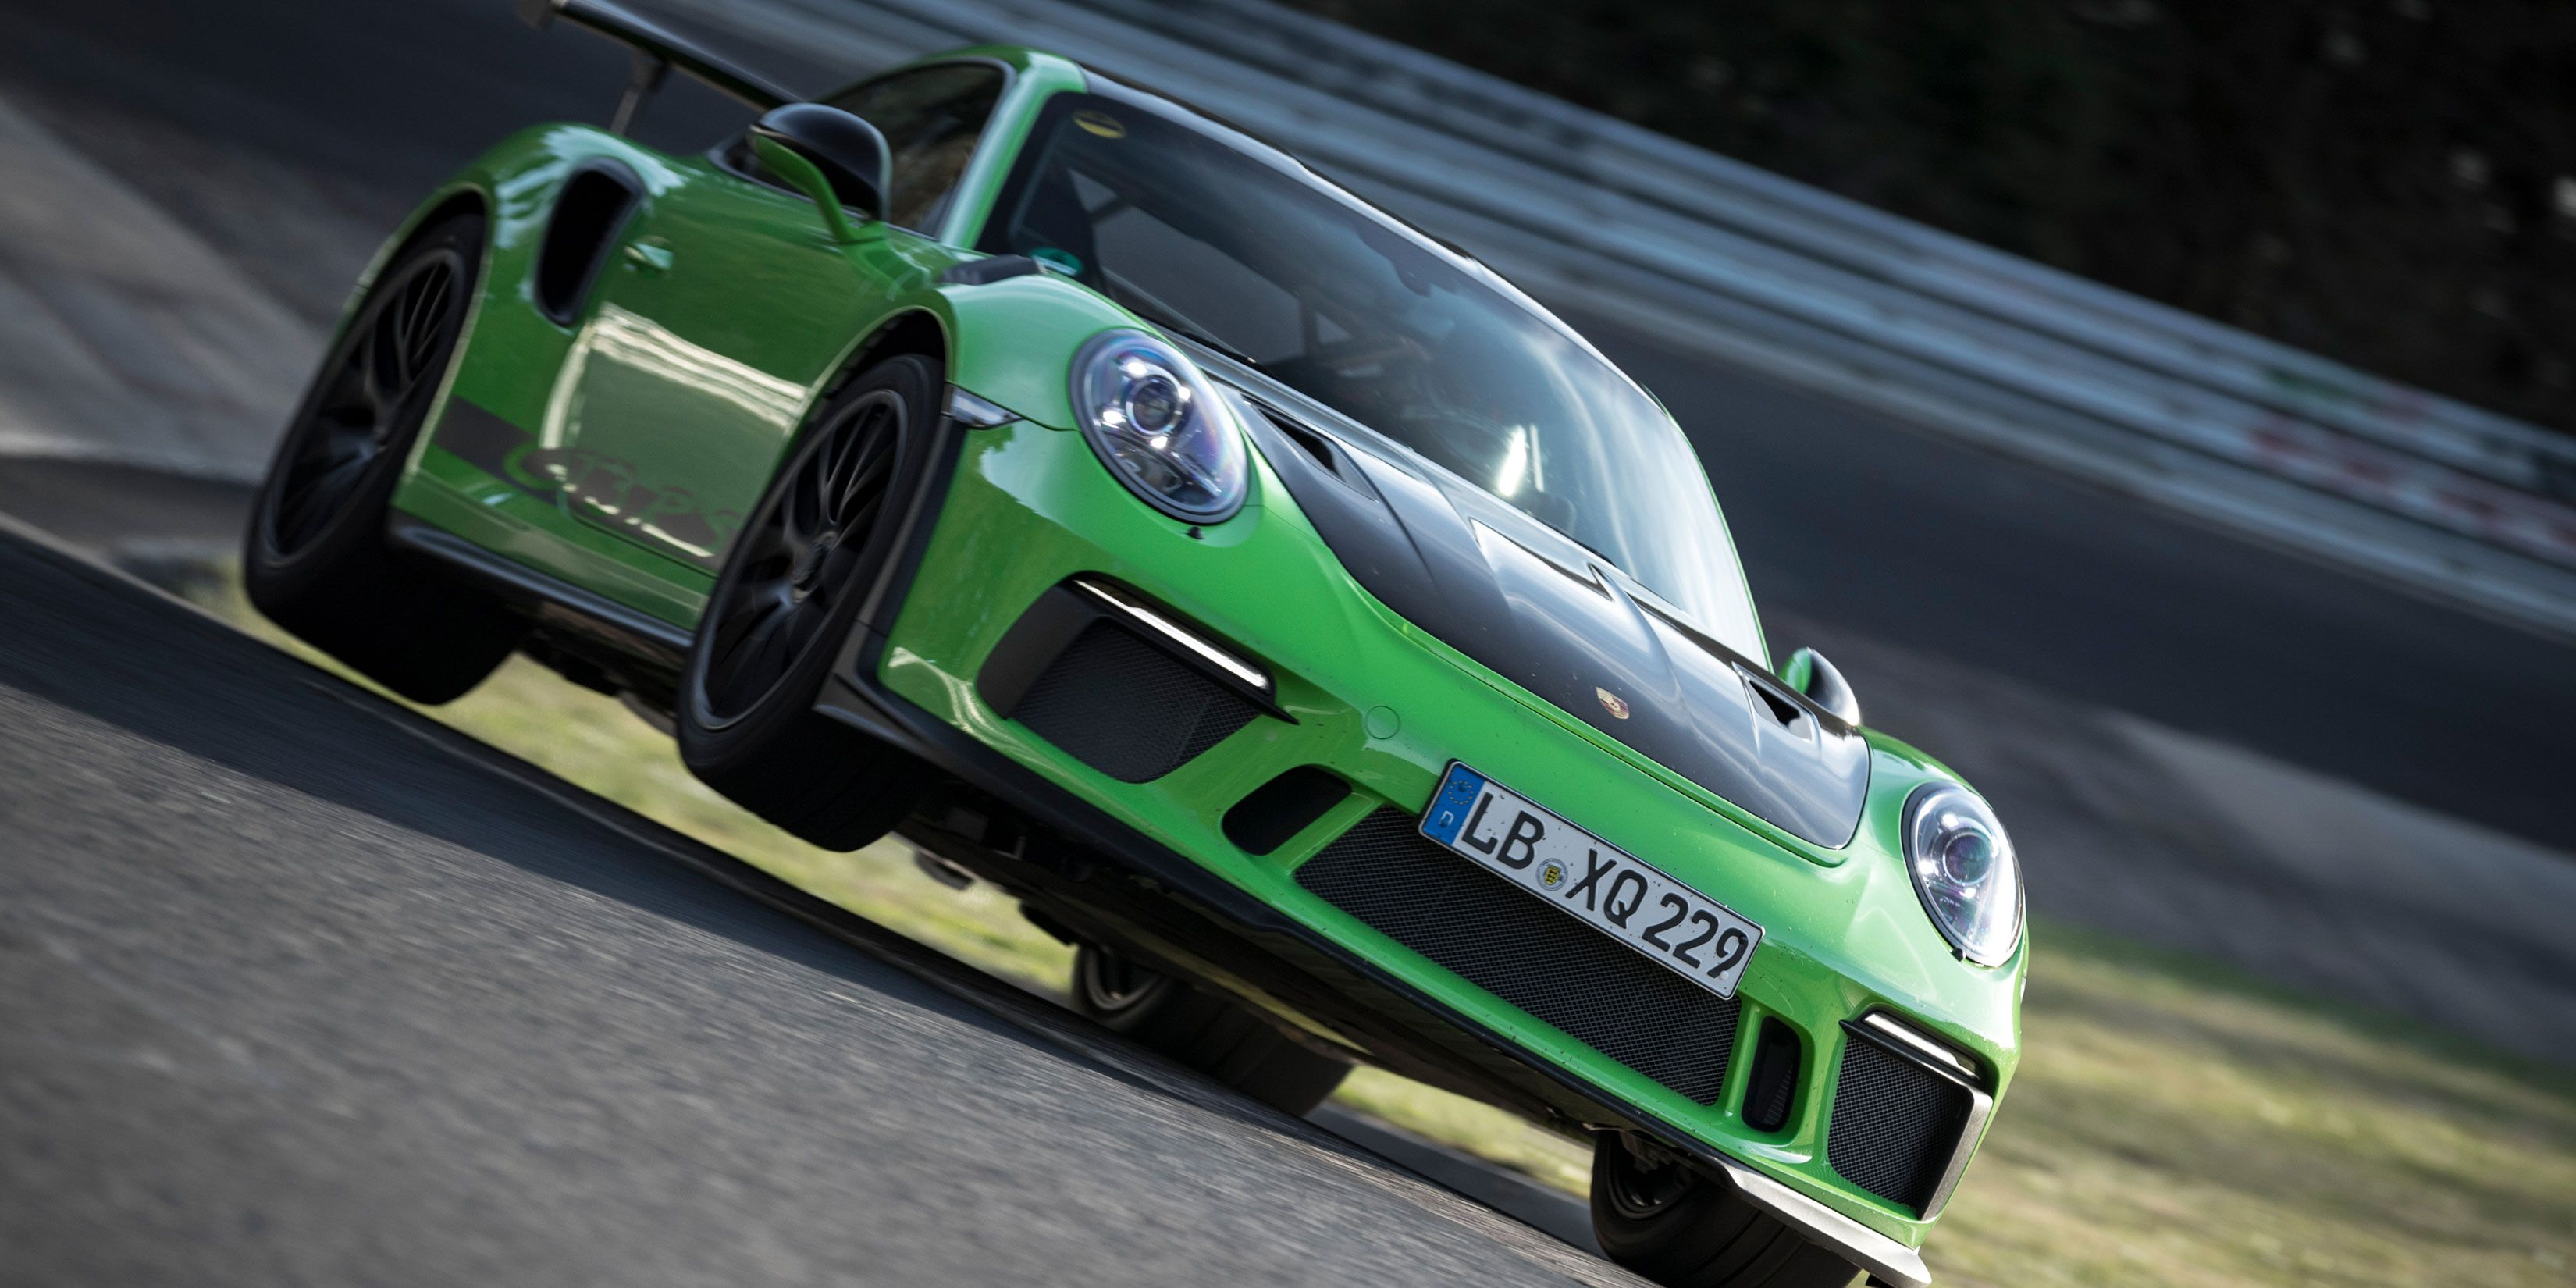 The 2019 Porsche 911 GT3 RS Just Ran a 6:56.4 at the Nurburgring